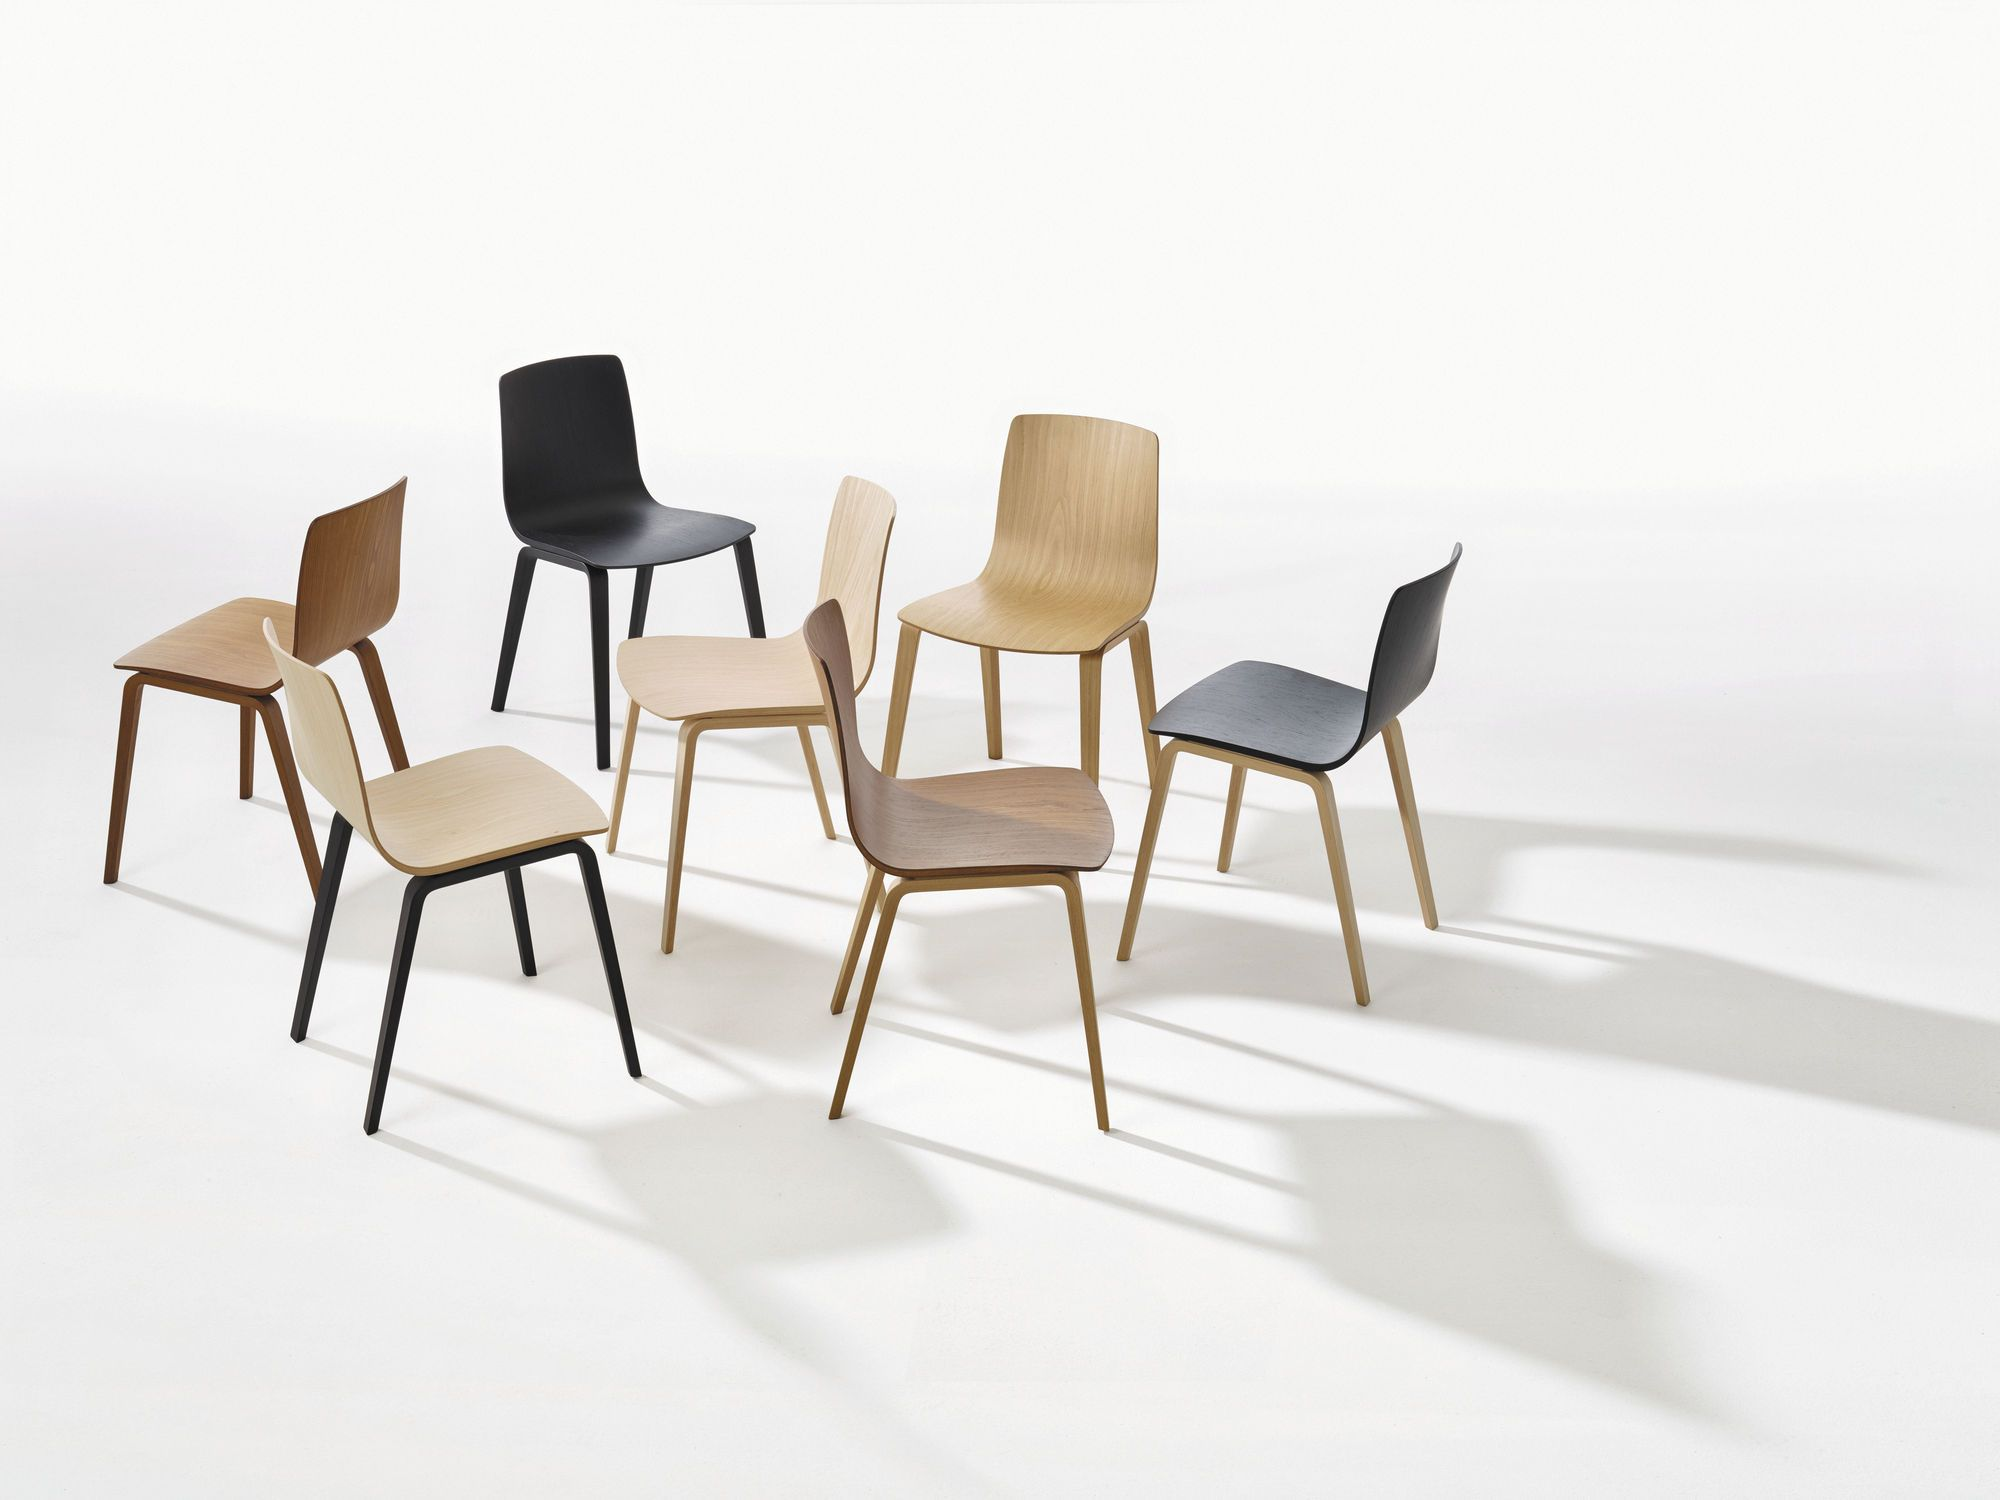 Contemporary Wooden Chairs 4048 4086369 Jpg 2000 1500 Chair